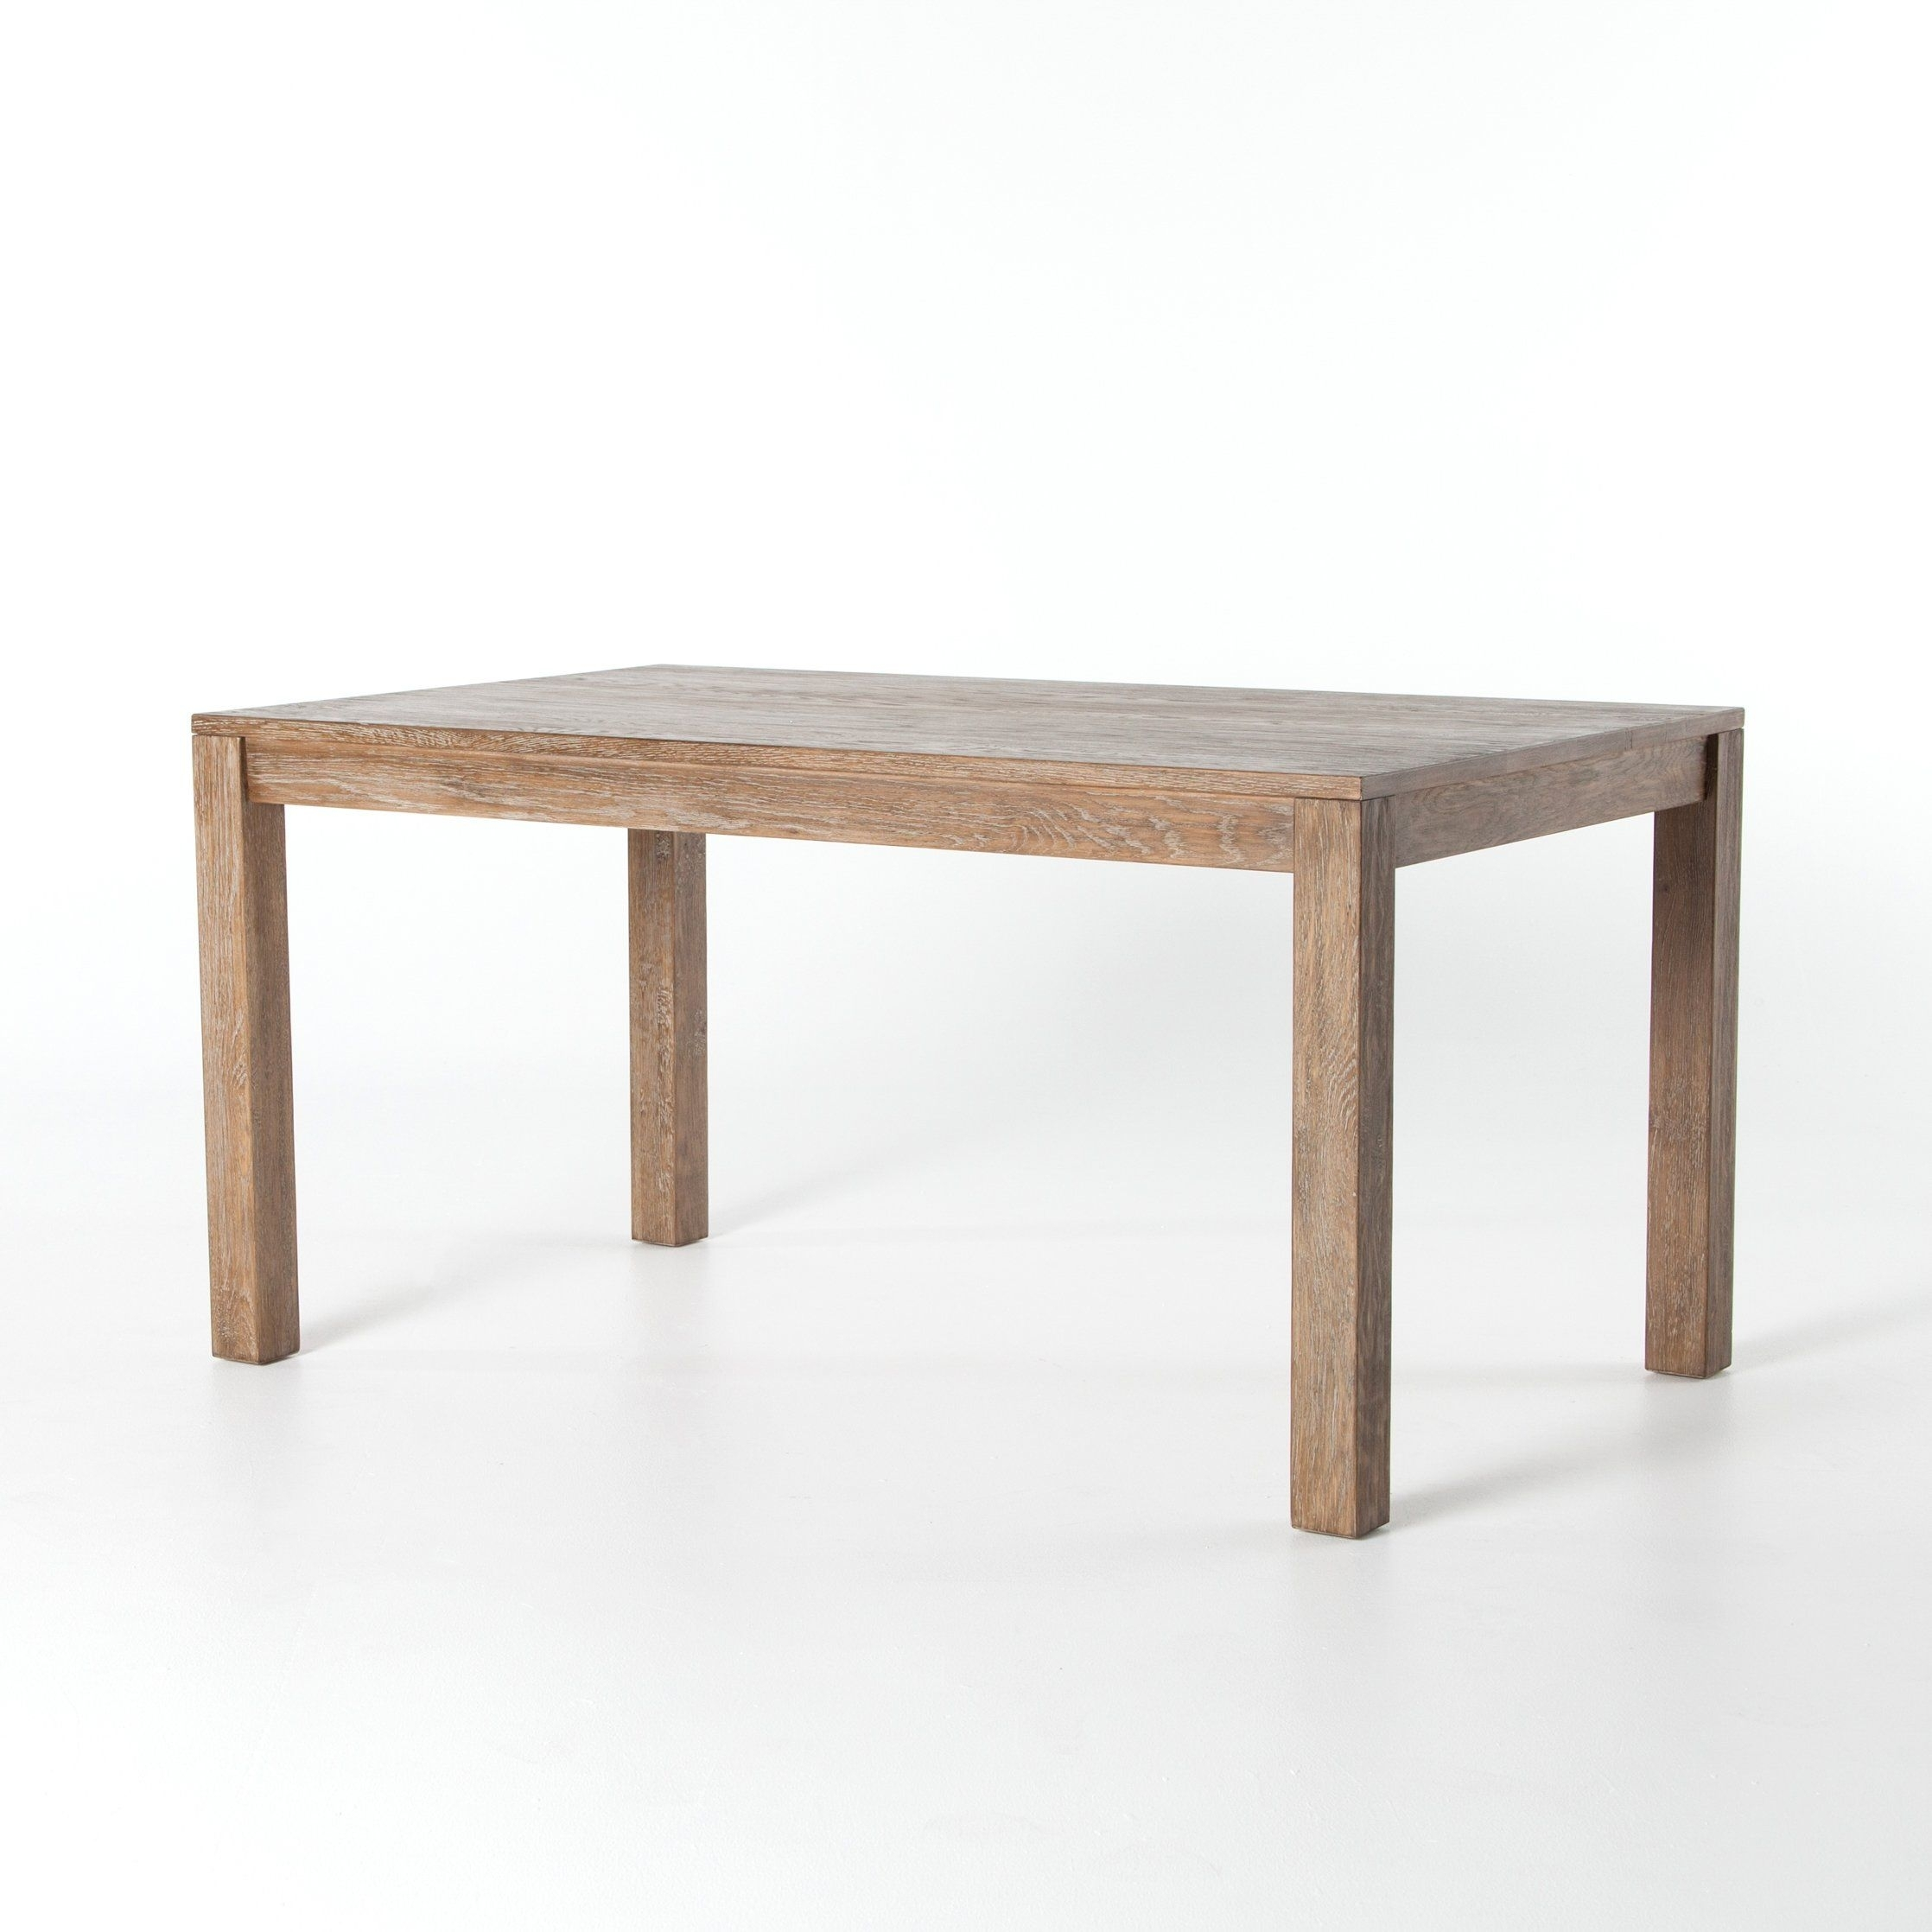 Caden Dining Table: Light Burnt Oak | Dining Table Lighting And Products Regarding Most Recently Released Caden Rectangle Dining Tables (View 5 of 20)